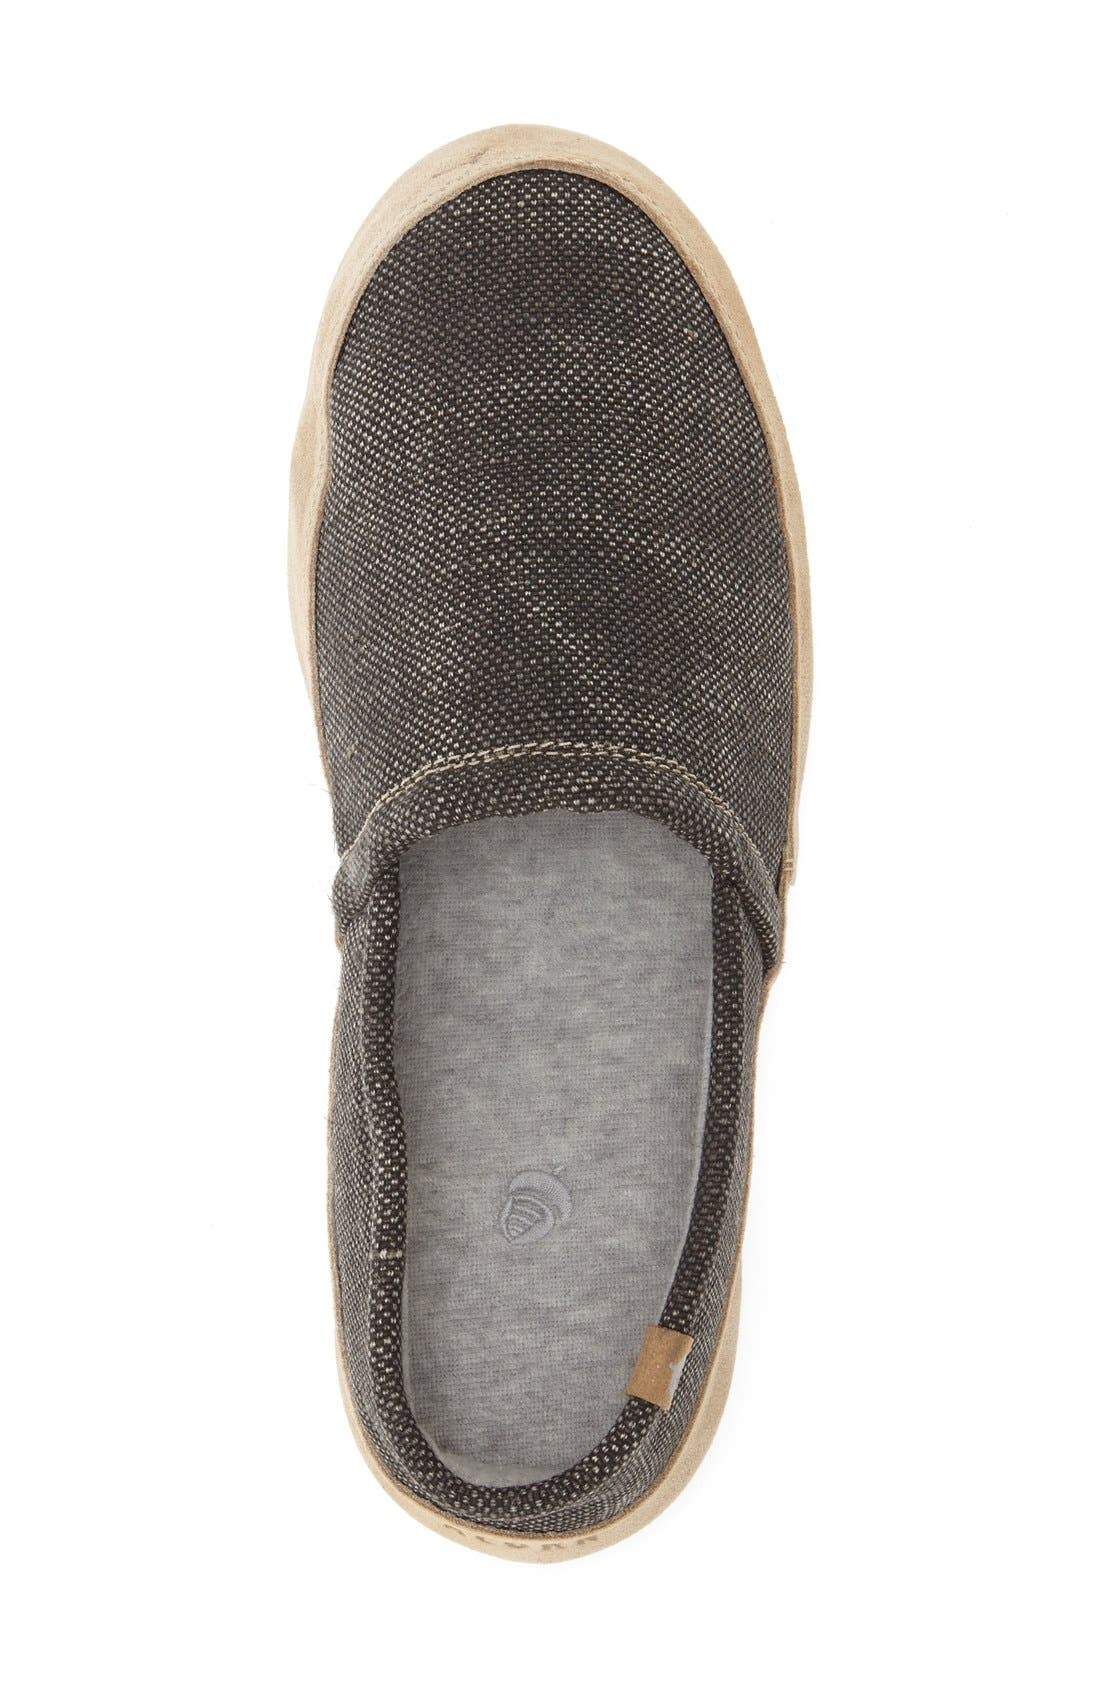 Moc Slipper,                             Alternate thumbnail 3, color,                             001